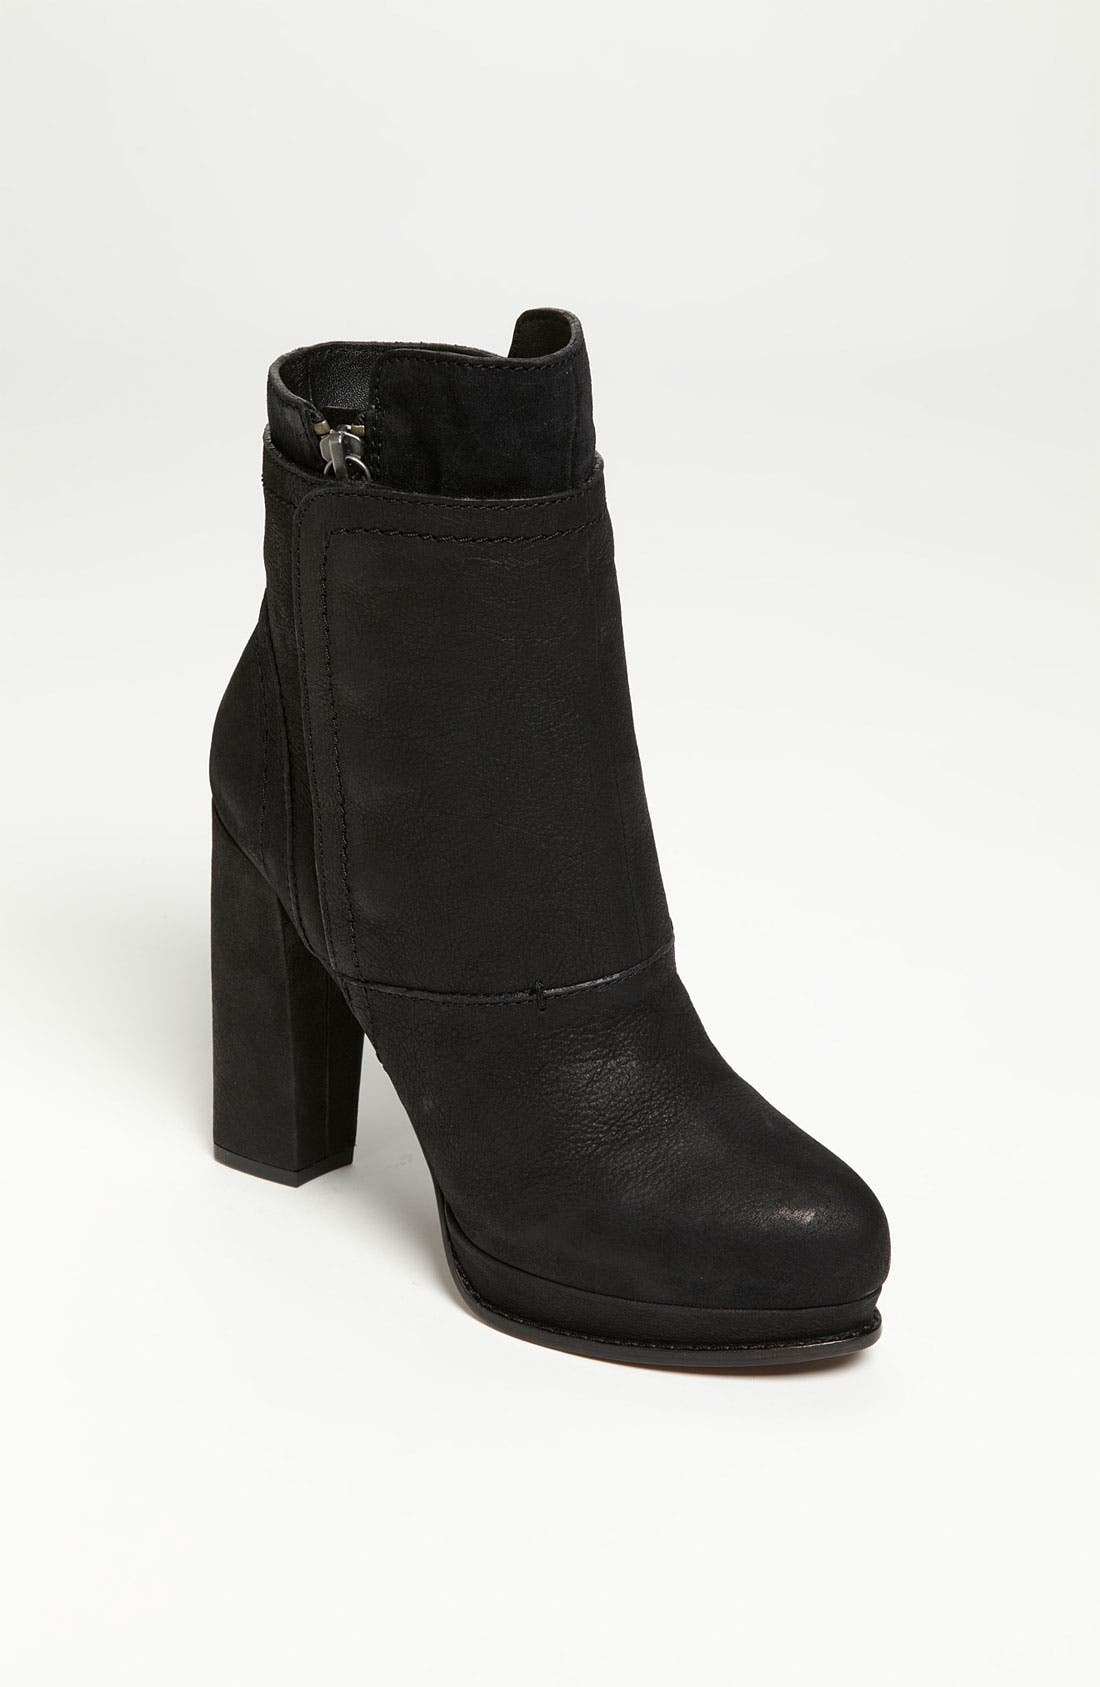 Main Image - Vera Wang Footwear 'Marilyn' Boot